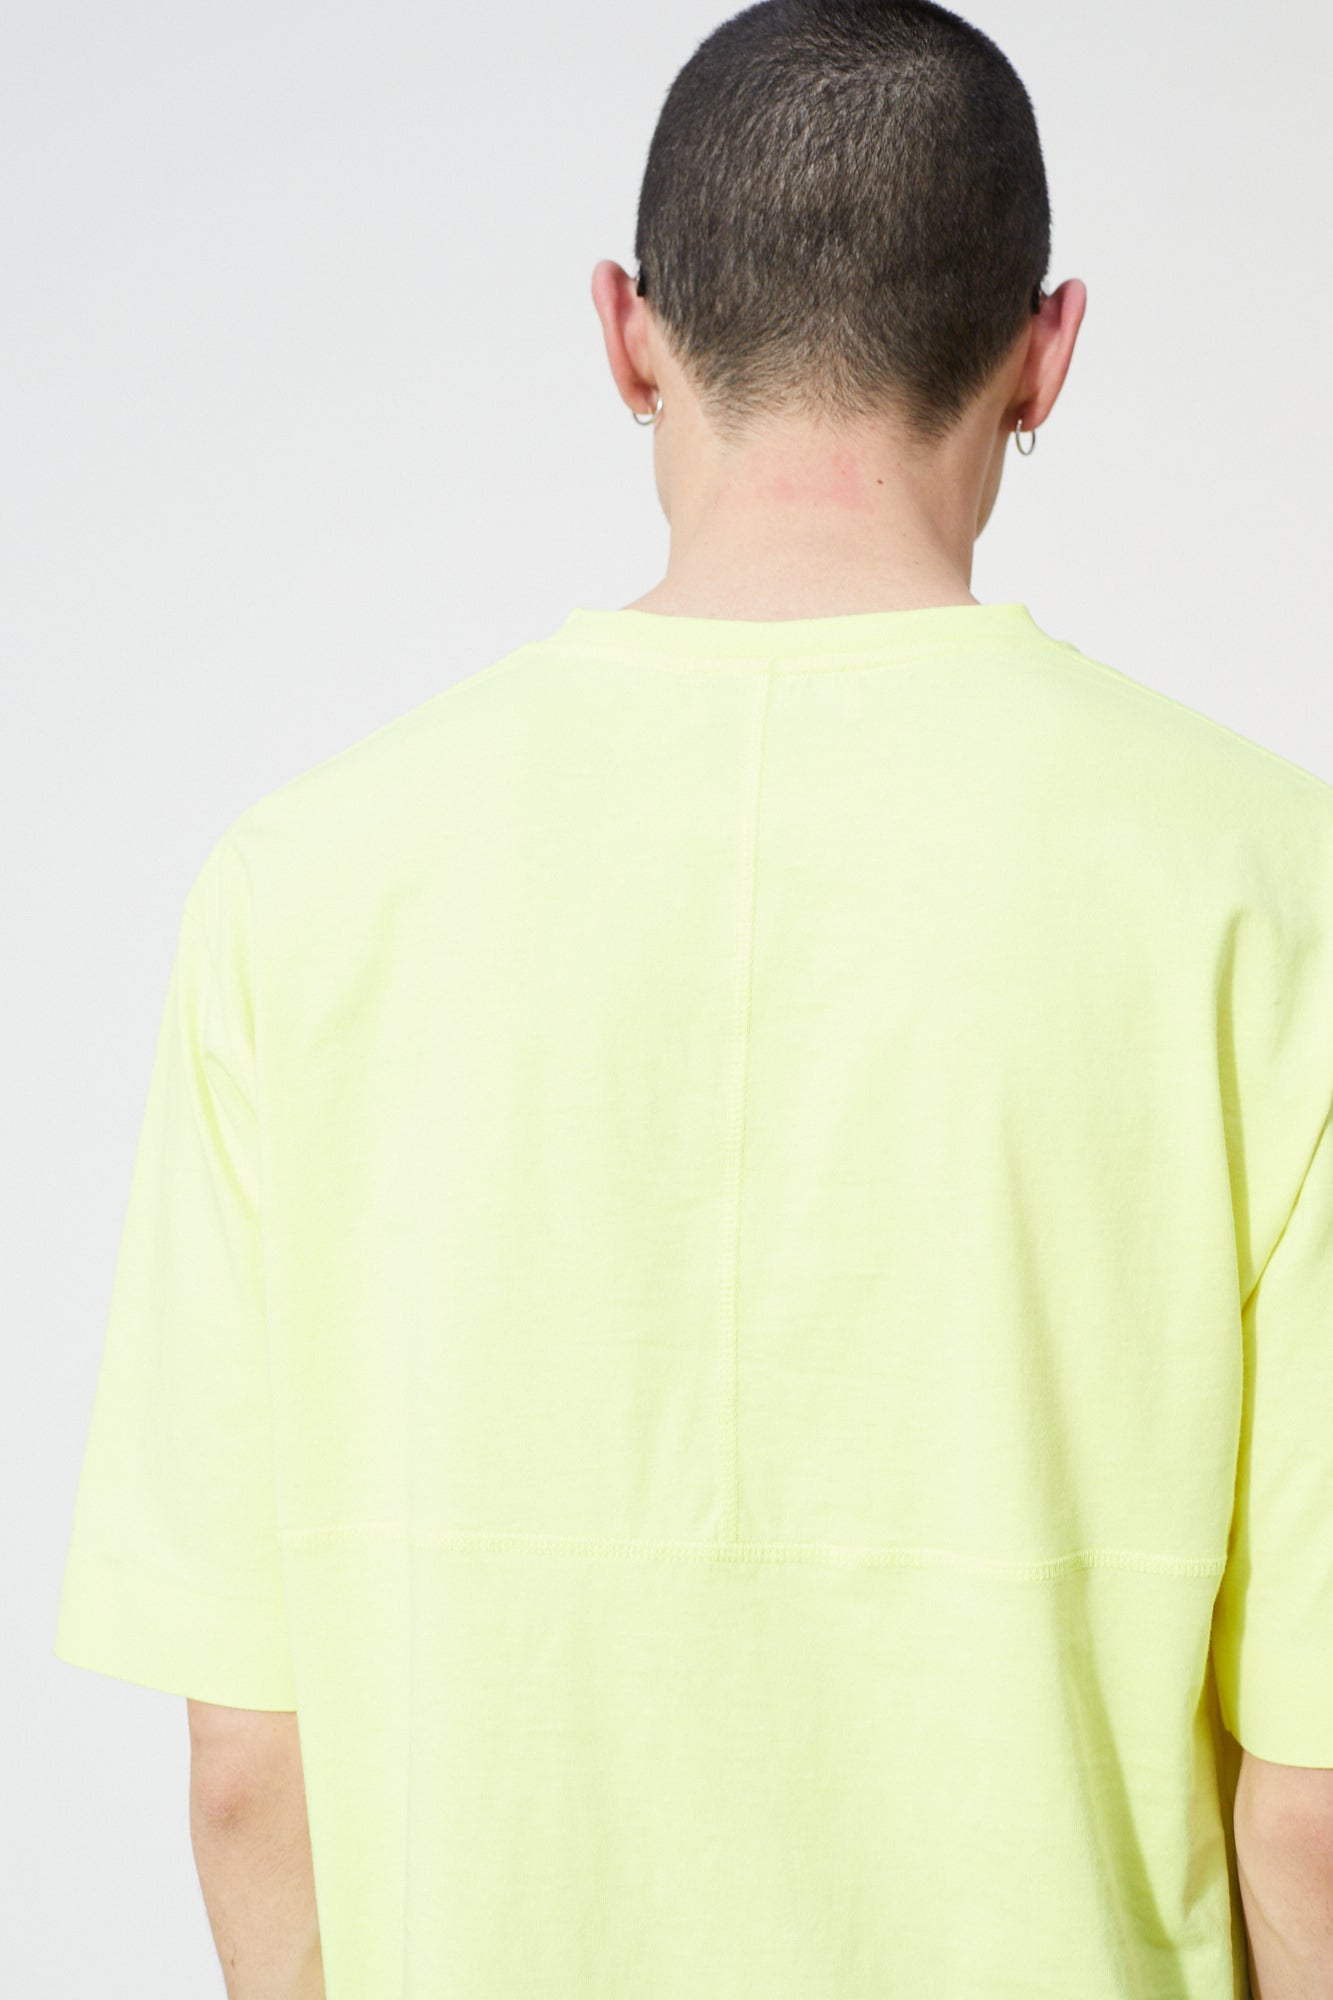 Études Cosmic Neon Yellow T-shirt 6